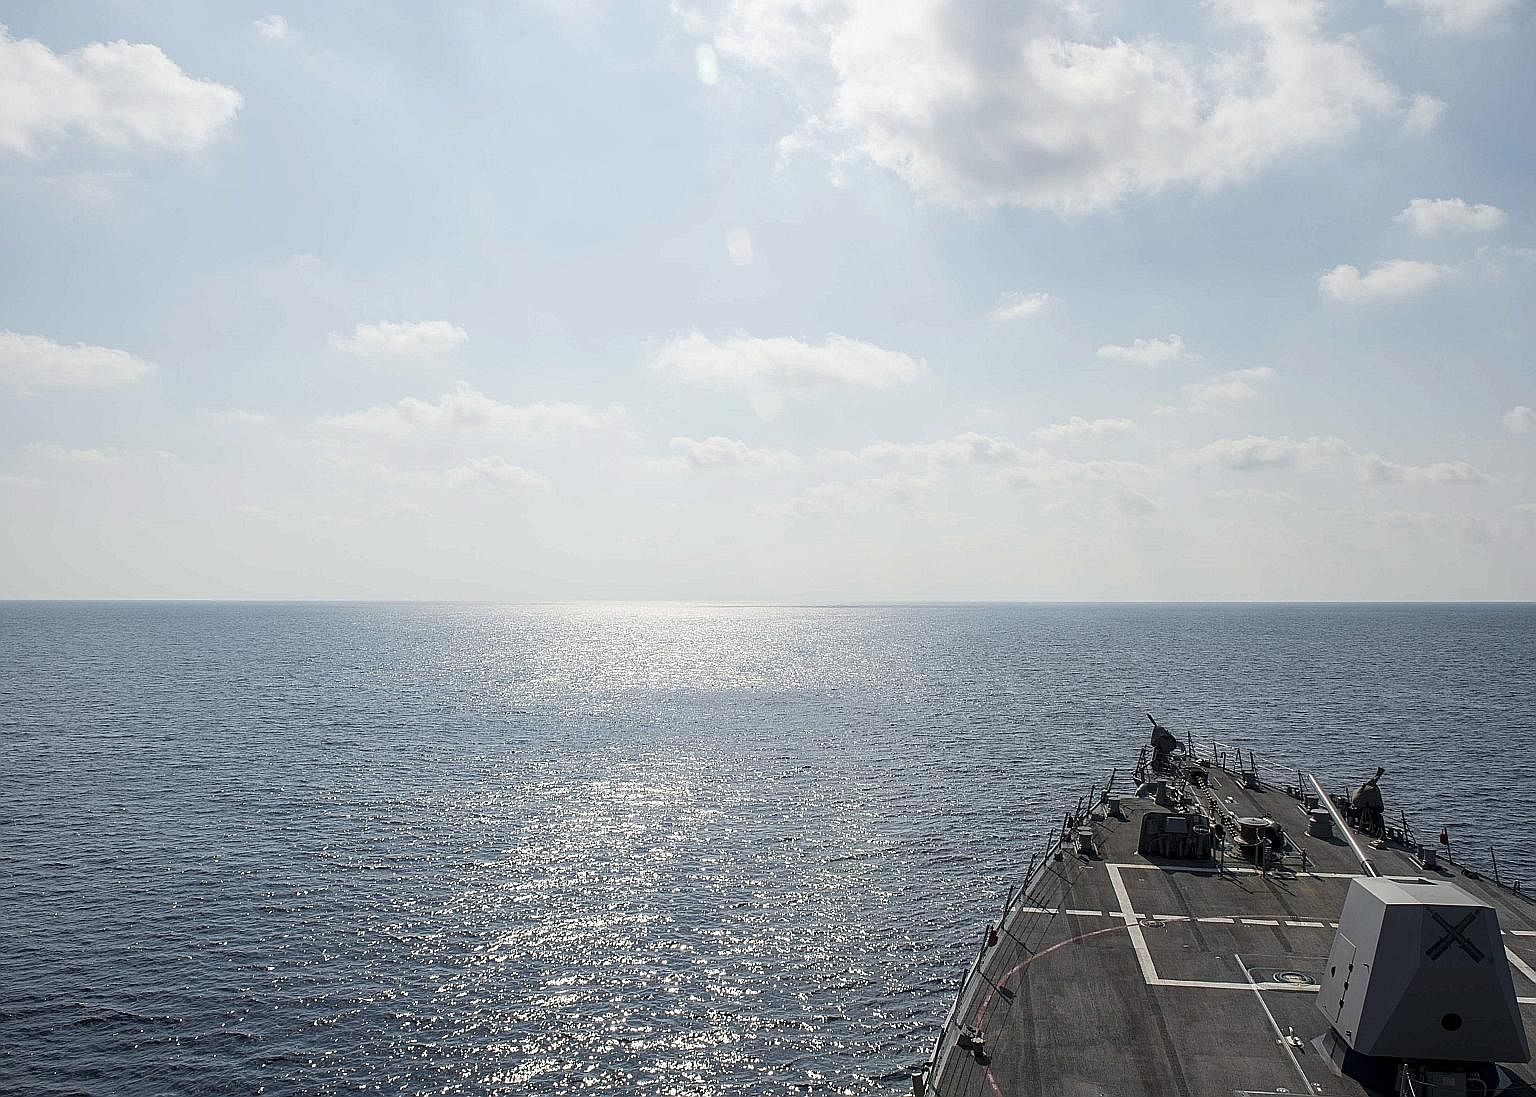 """The guided-missile destroyer USS William P. Lawrence conducting a routine patrol in international waters in the South China Sea on May 2. On May 10, the US vessel was reported to have conducted a """"routine freedom of navigation operation"""" sailing near"""